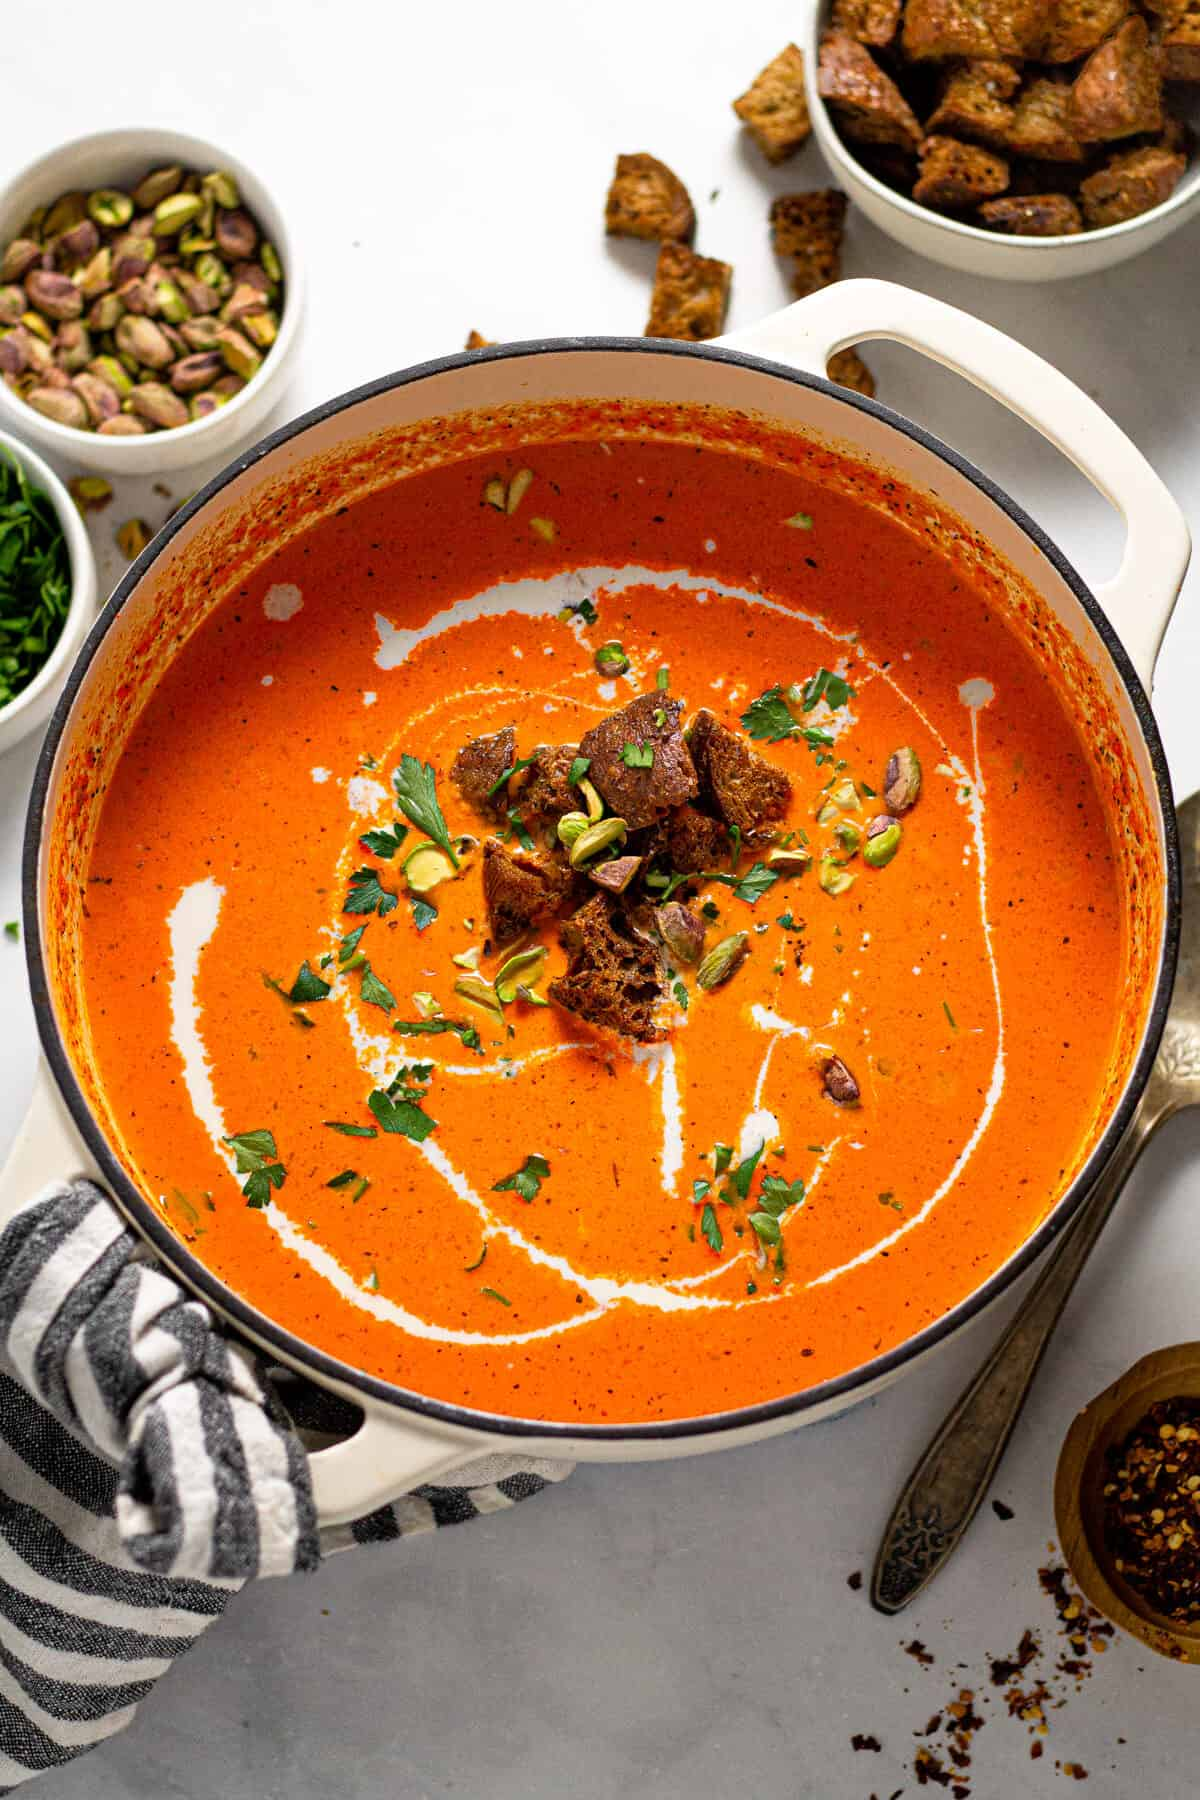 Overhead shot of a pot of roasted red pepper soup garnished with croutons and chopped parsley